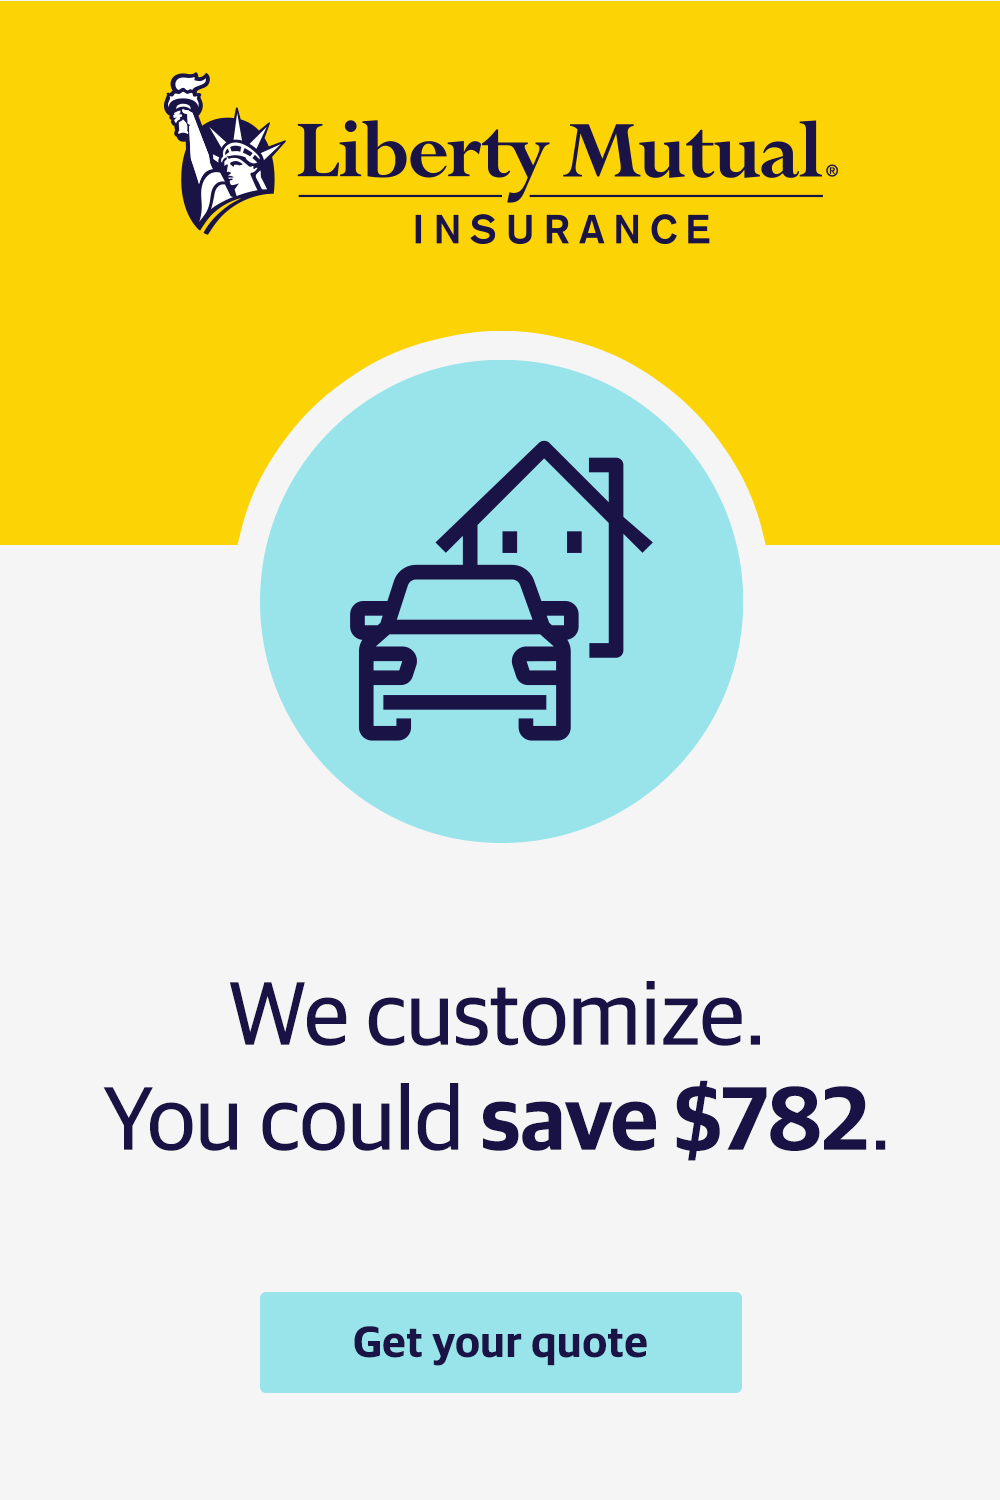 We Customize Your Auto And Home Insurance So You Only Pay For What